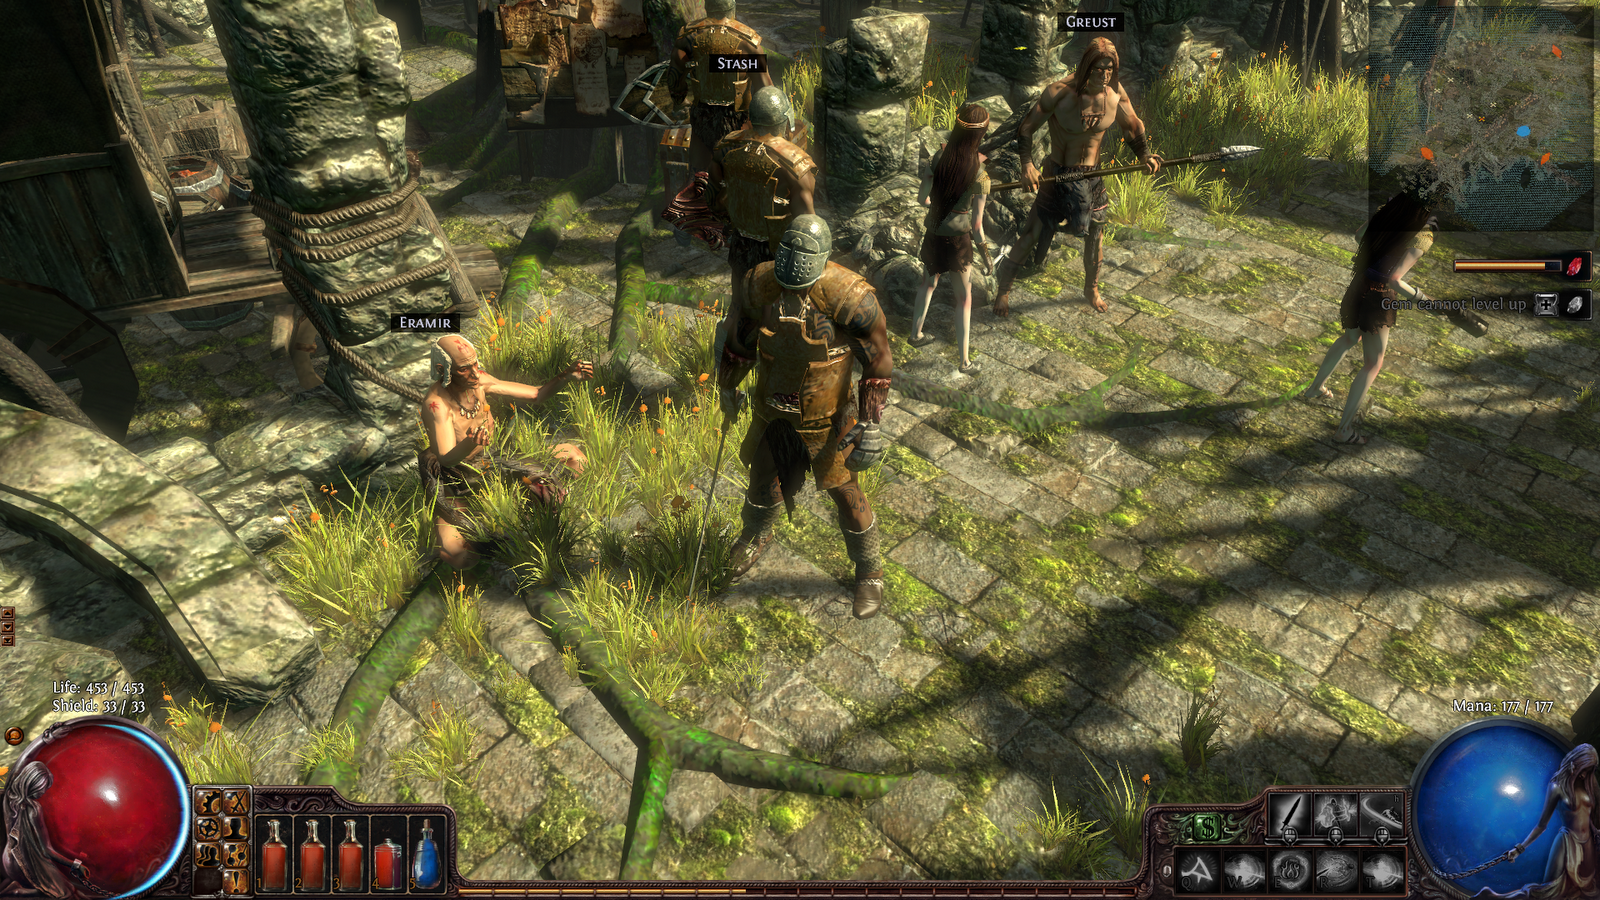 The Six Sided Ring of Fire: Action RPG: Path of Exile Open